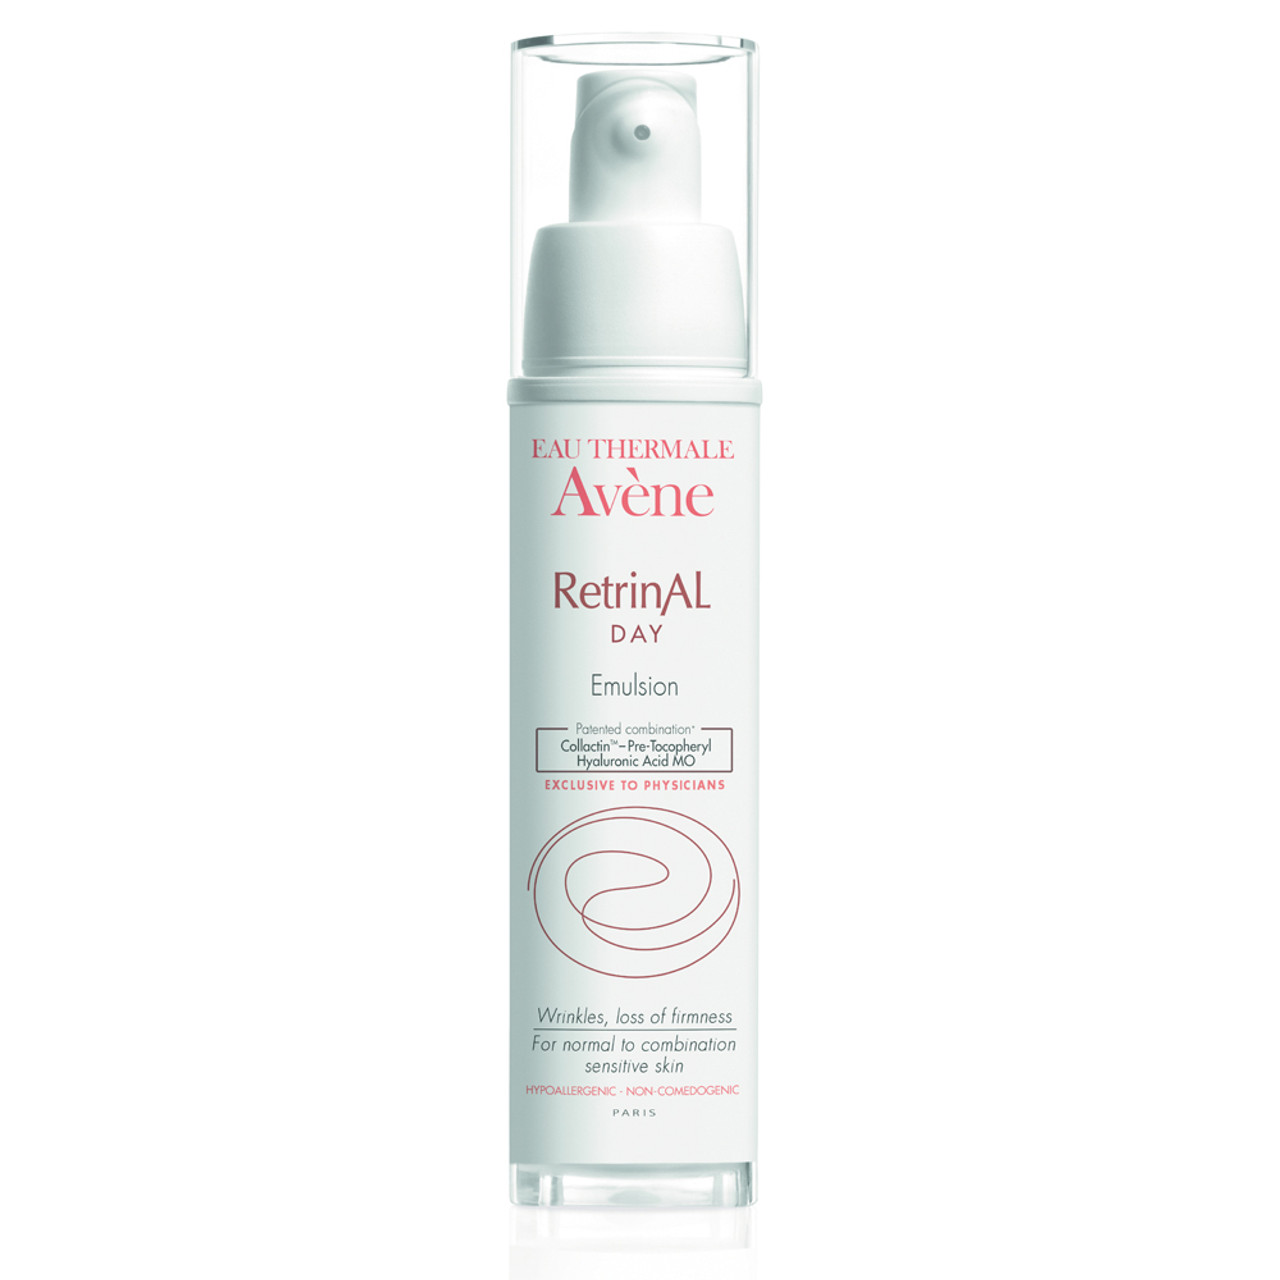 Avene Retrinal Day Emulsion